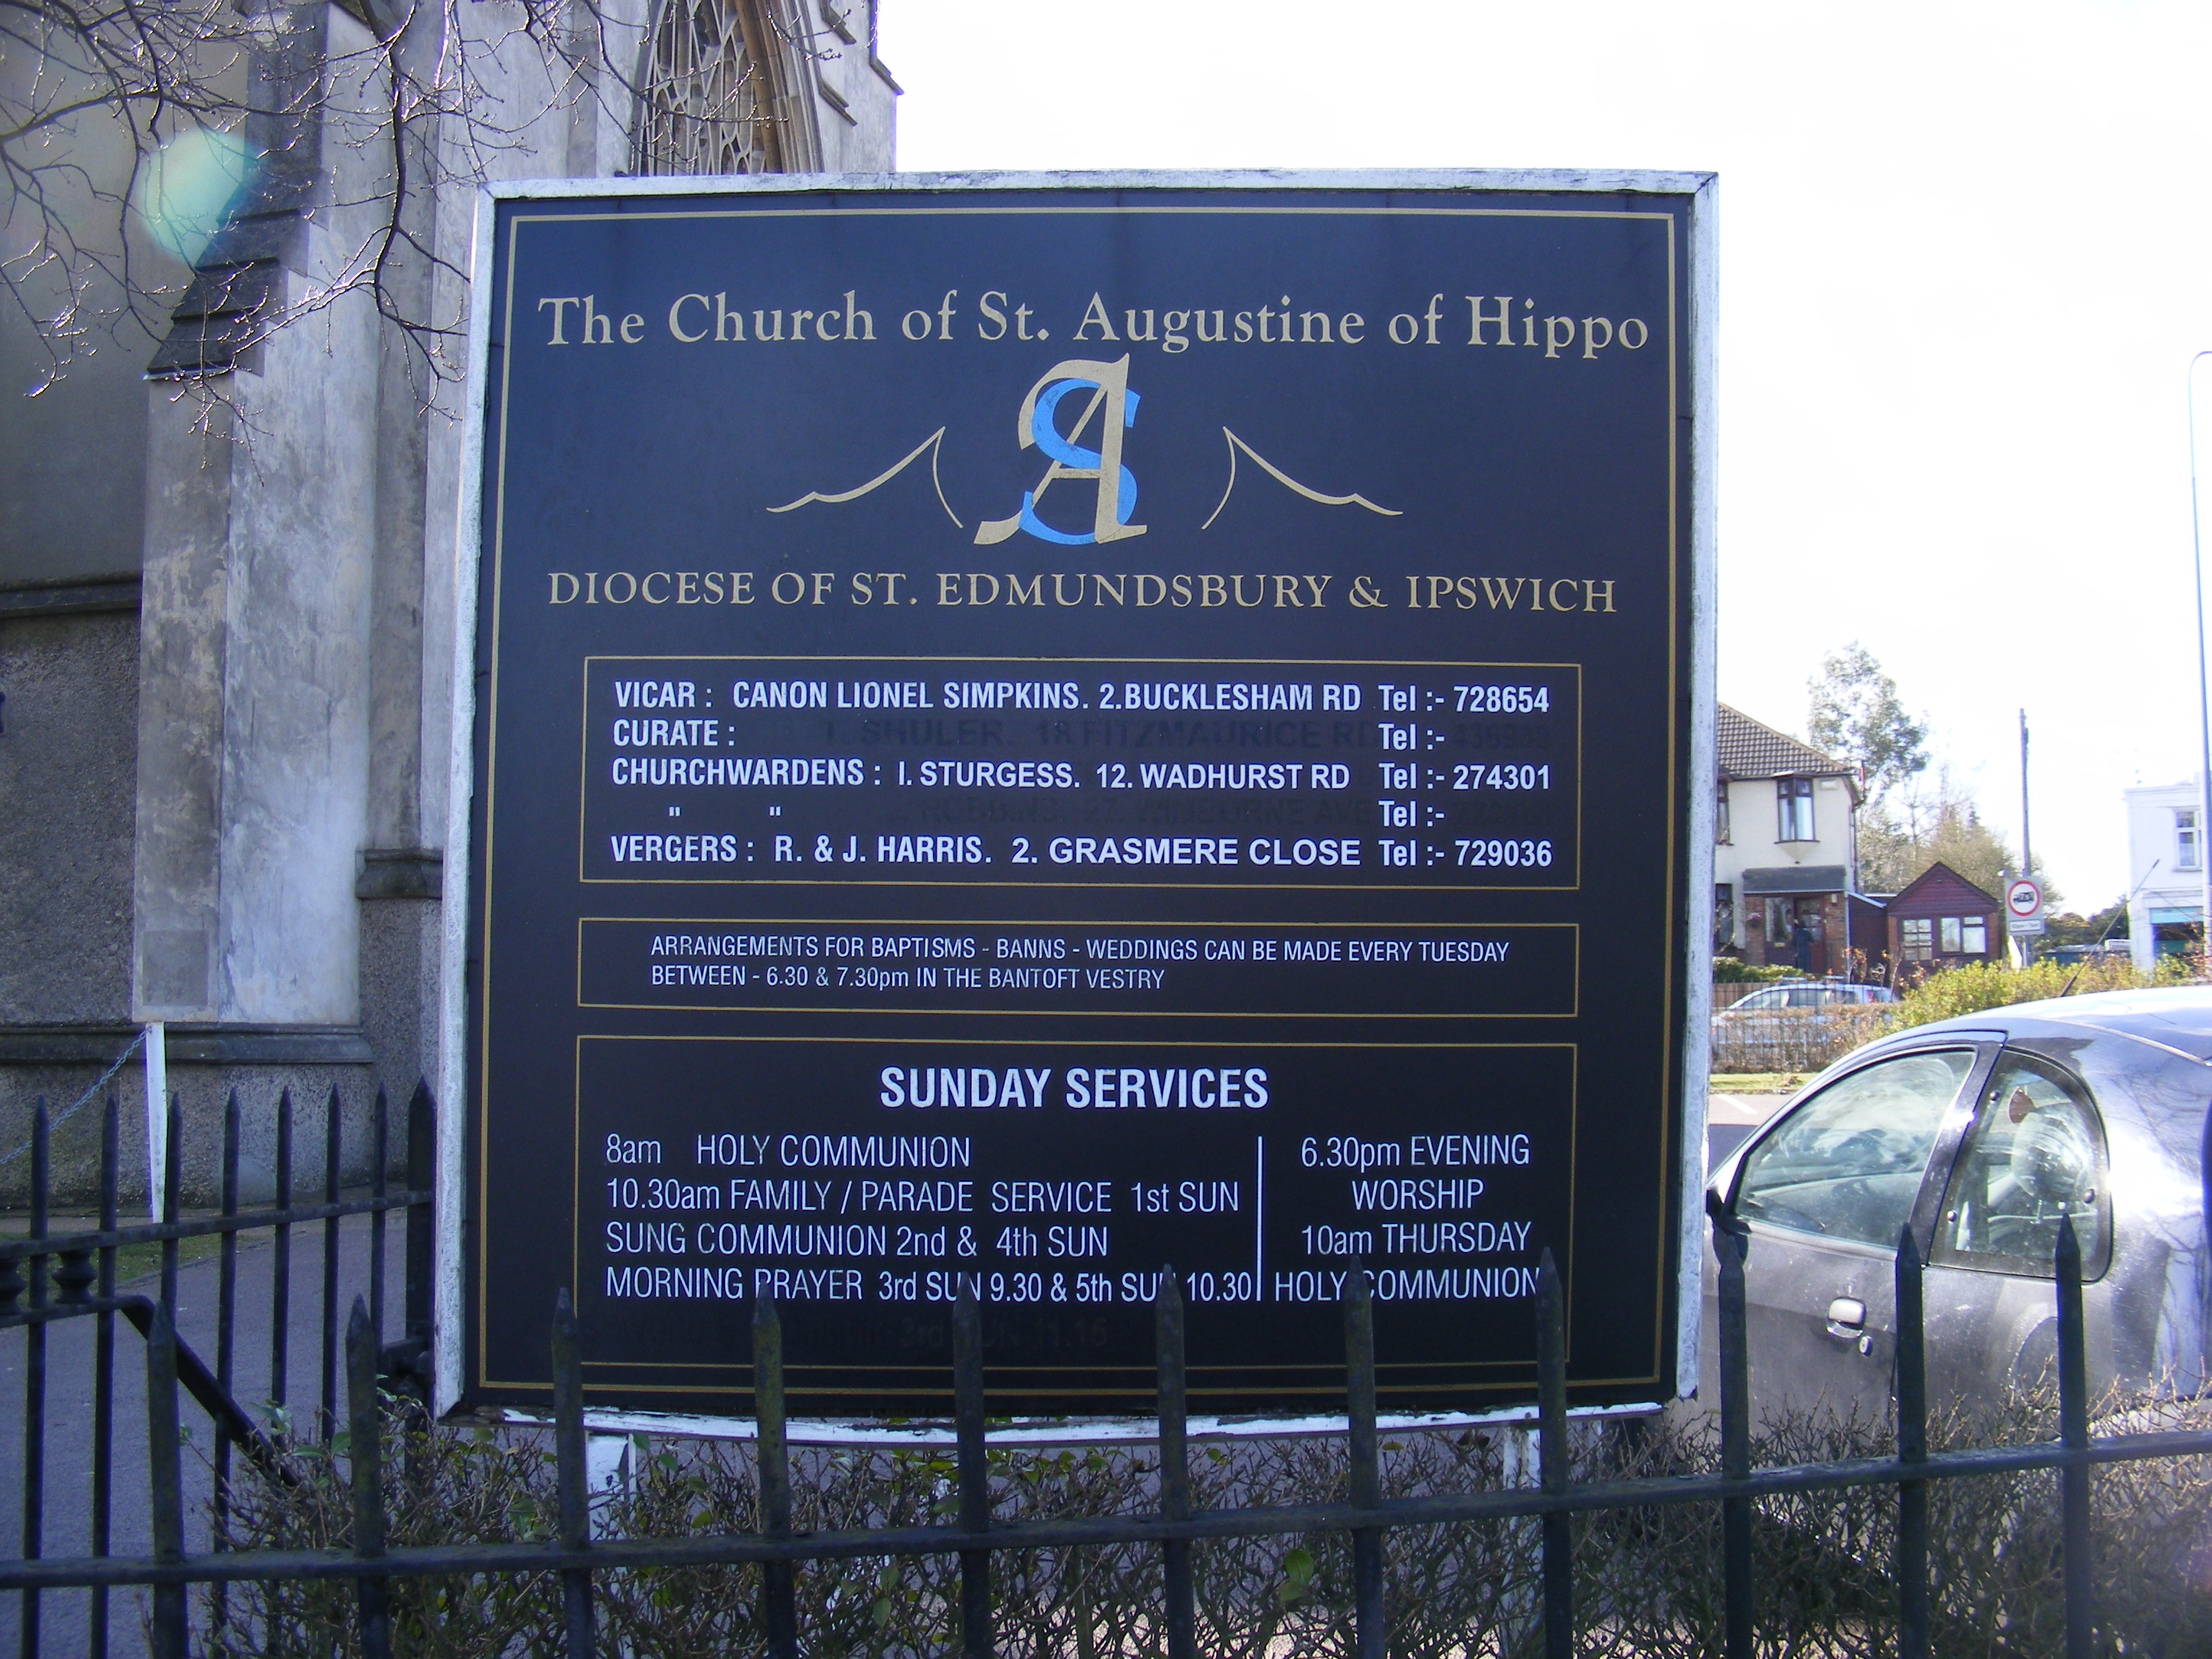 File:The Church of St Augustine of Hippo, Ipswich Sign